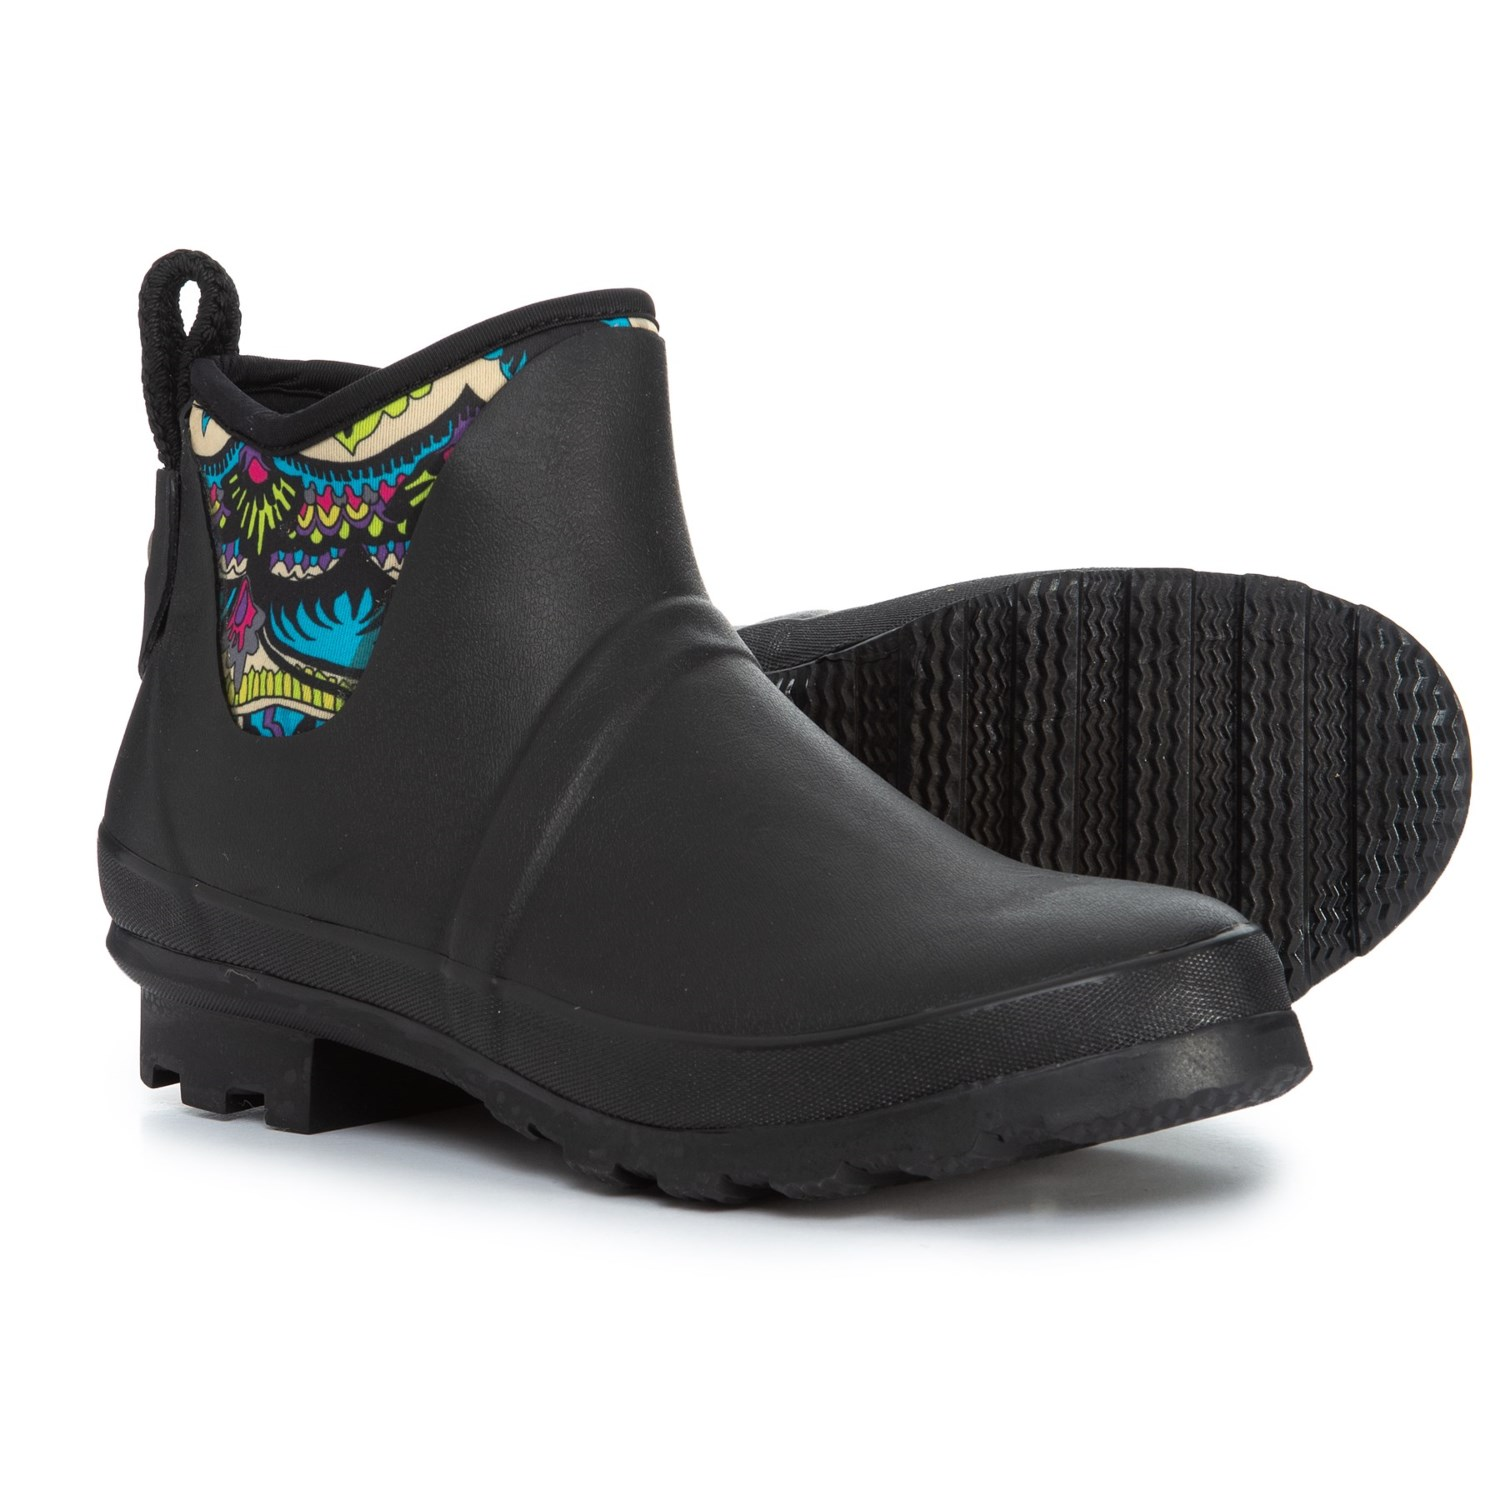 e2209be1d59 Sakroots Mano Ankle Rain Boots - Waterproof (For Women)